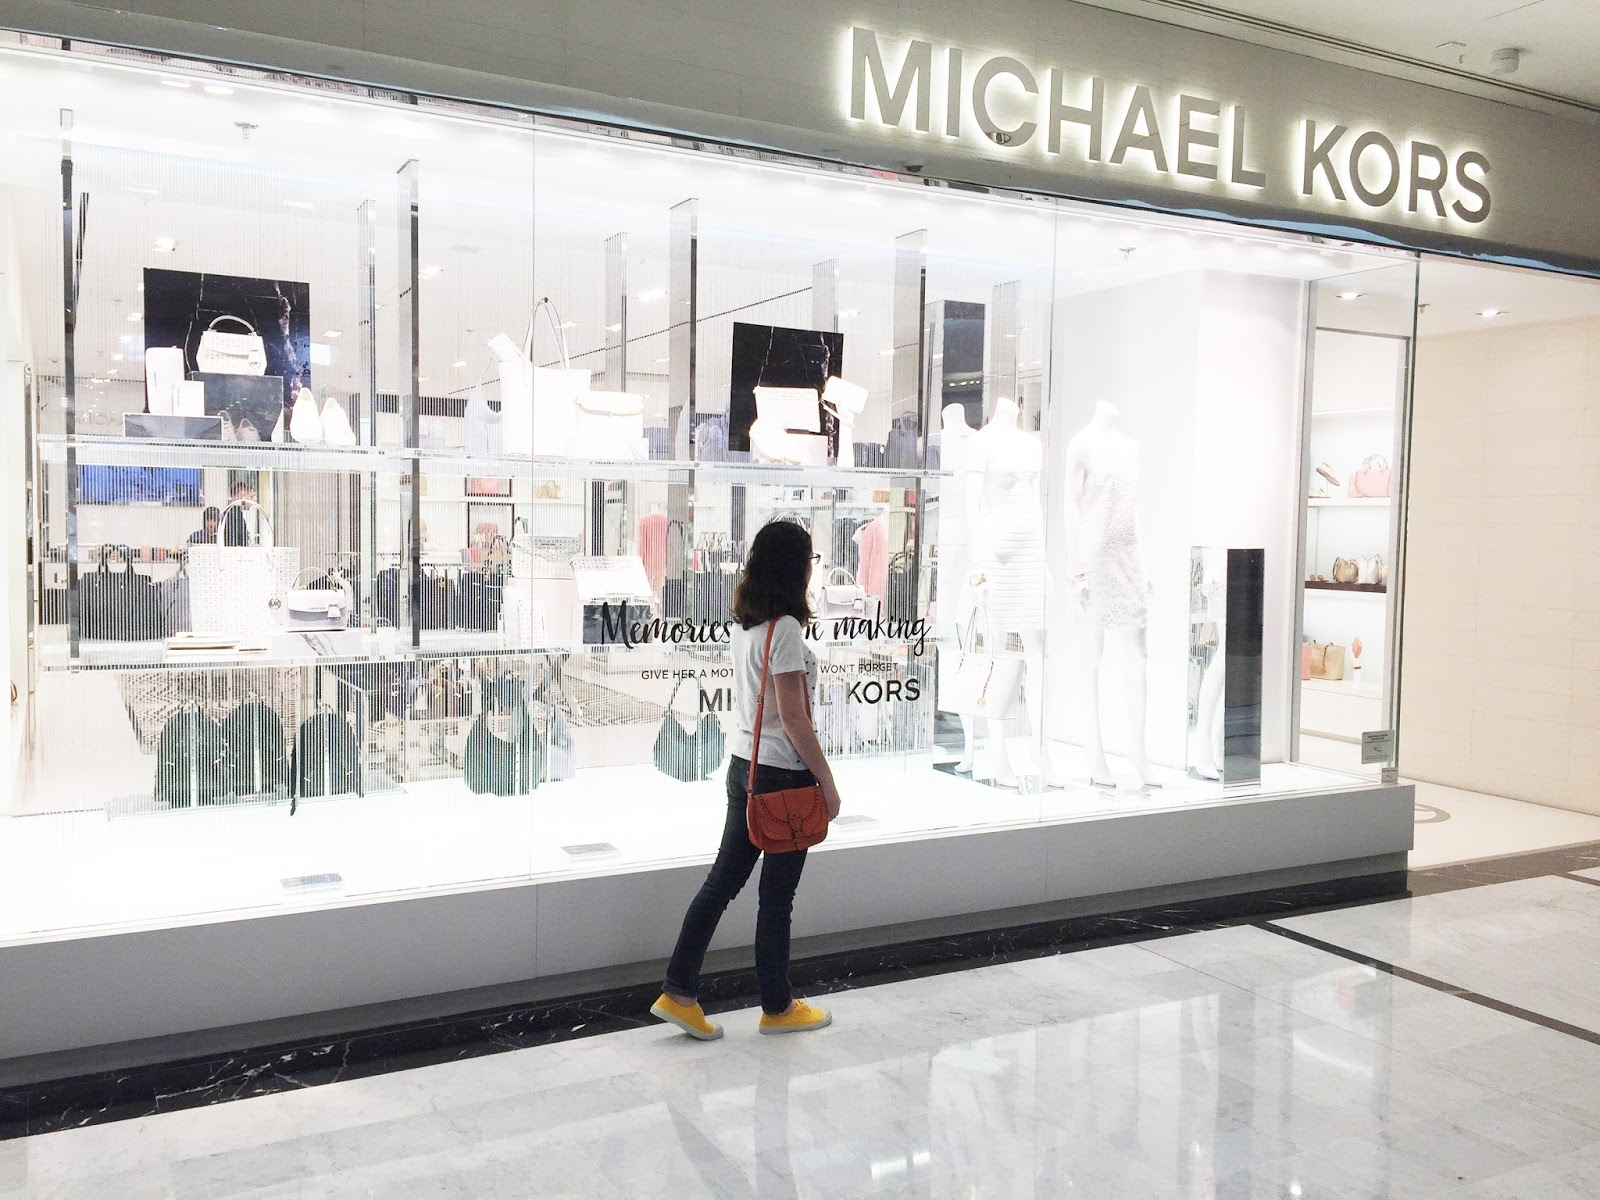 shopping centre commercial parly 2 le chesnay versailles ambassadeurParly2 ambassadrice achat magasin 78 yvelines michael kors vitrine sac maroquinerie